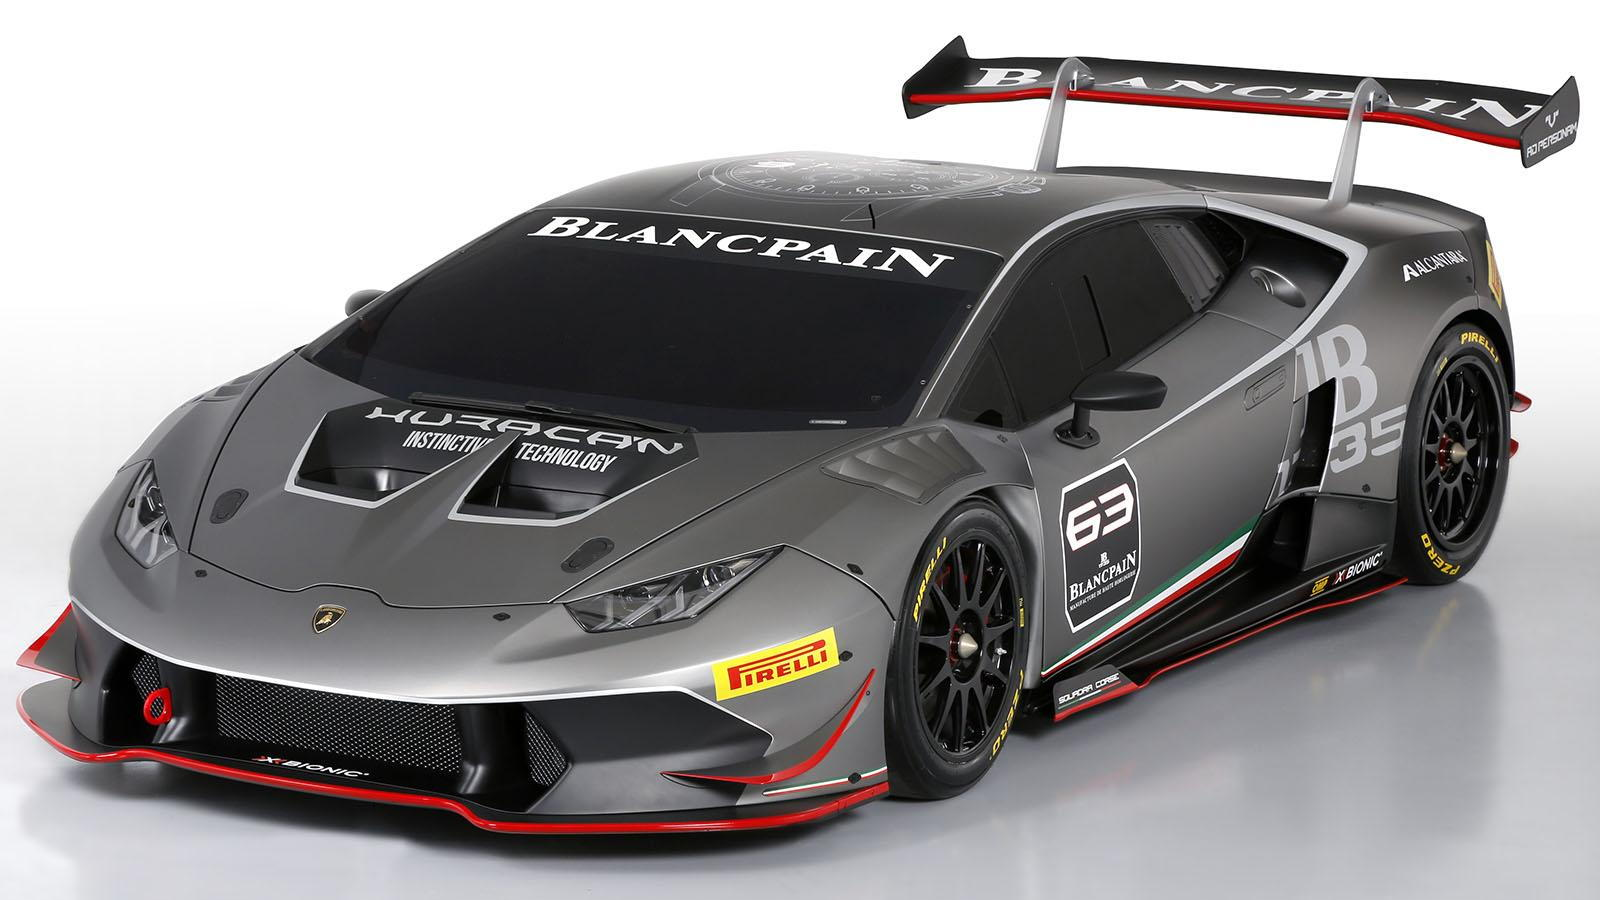 2015 Lamborghini Huracán LP 620-2 Super Trofeo race car